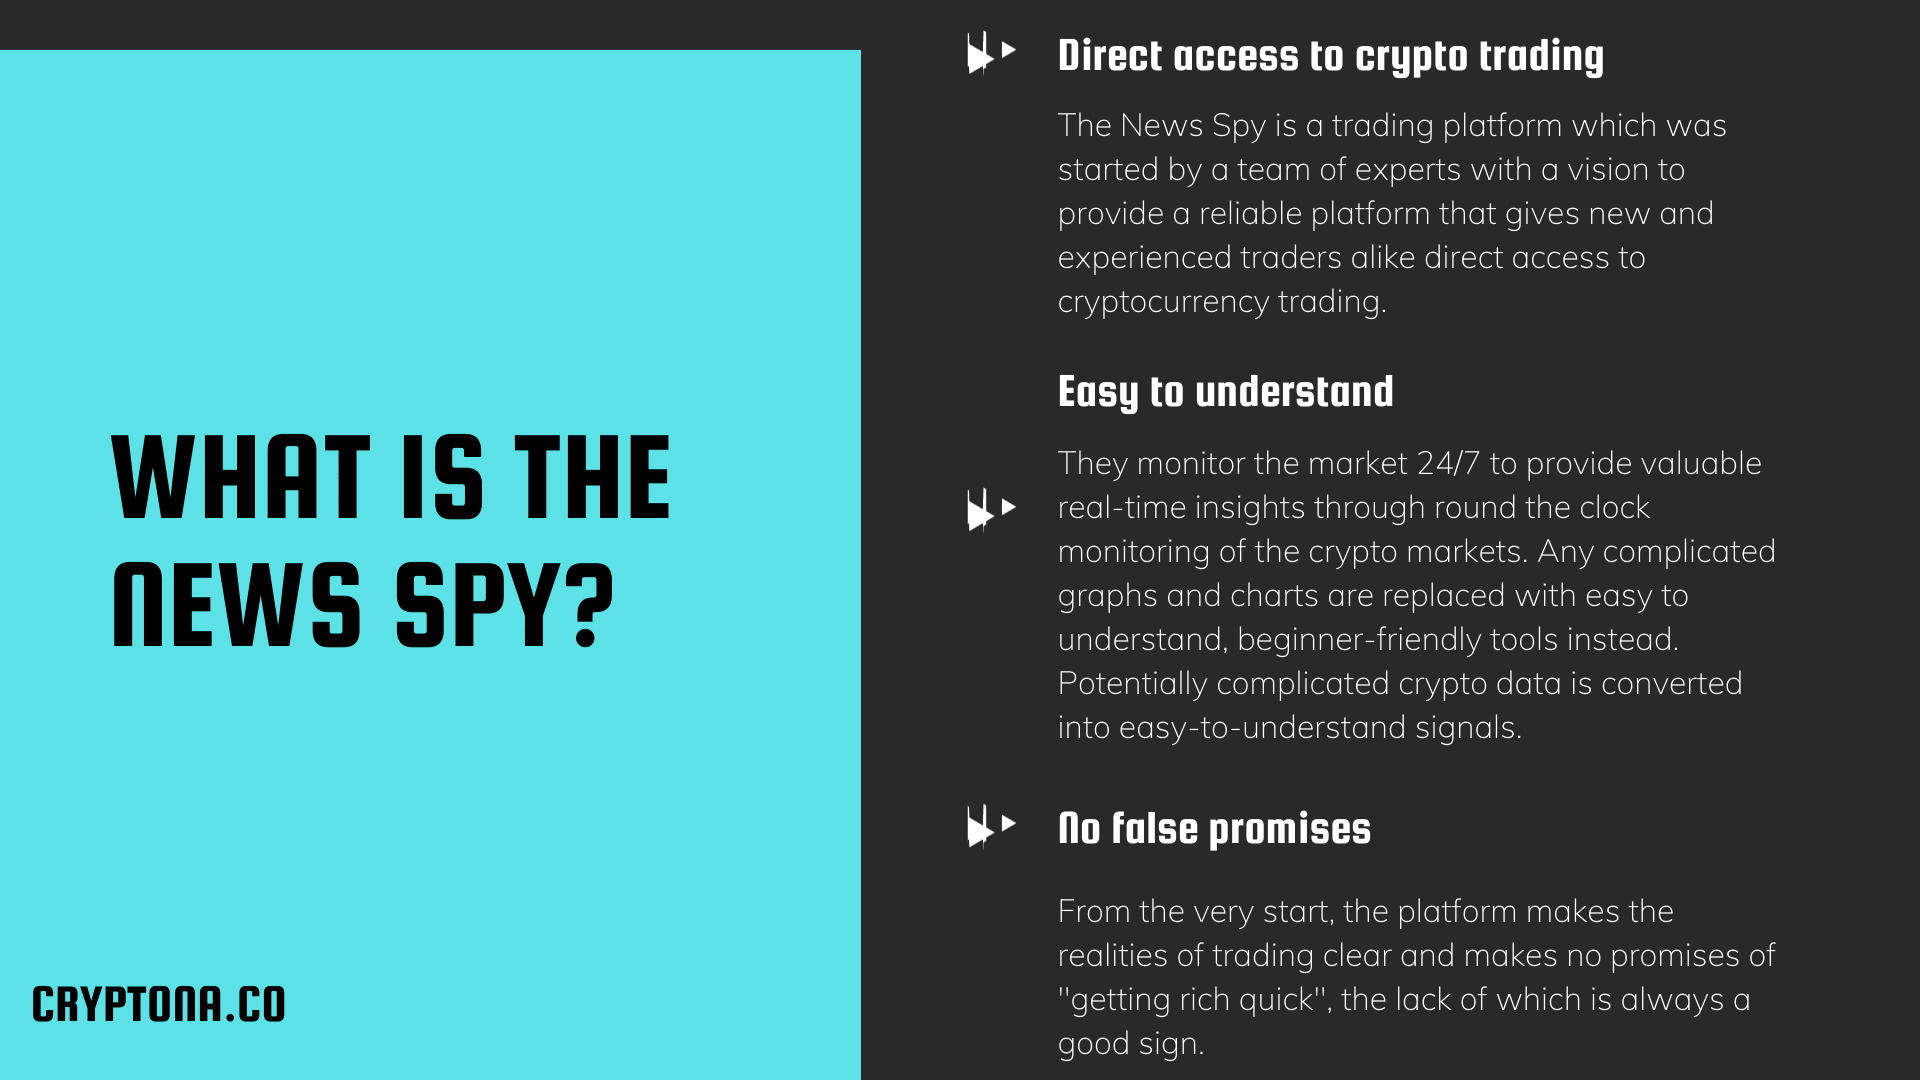 Can The News Spy Find Crypto Opportunities or is it a Hustle?